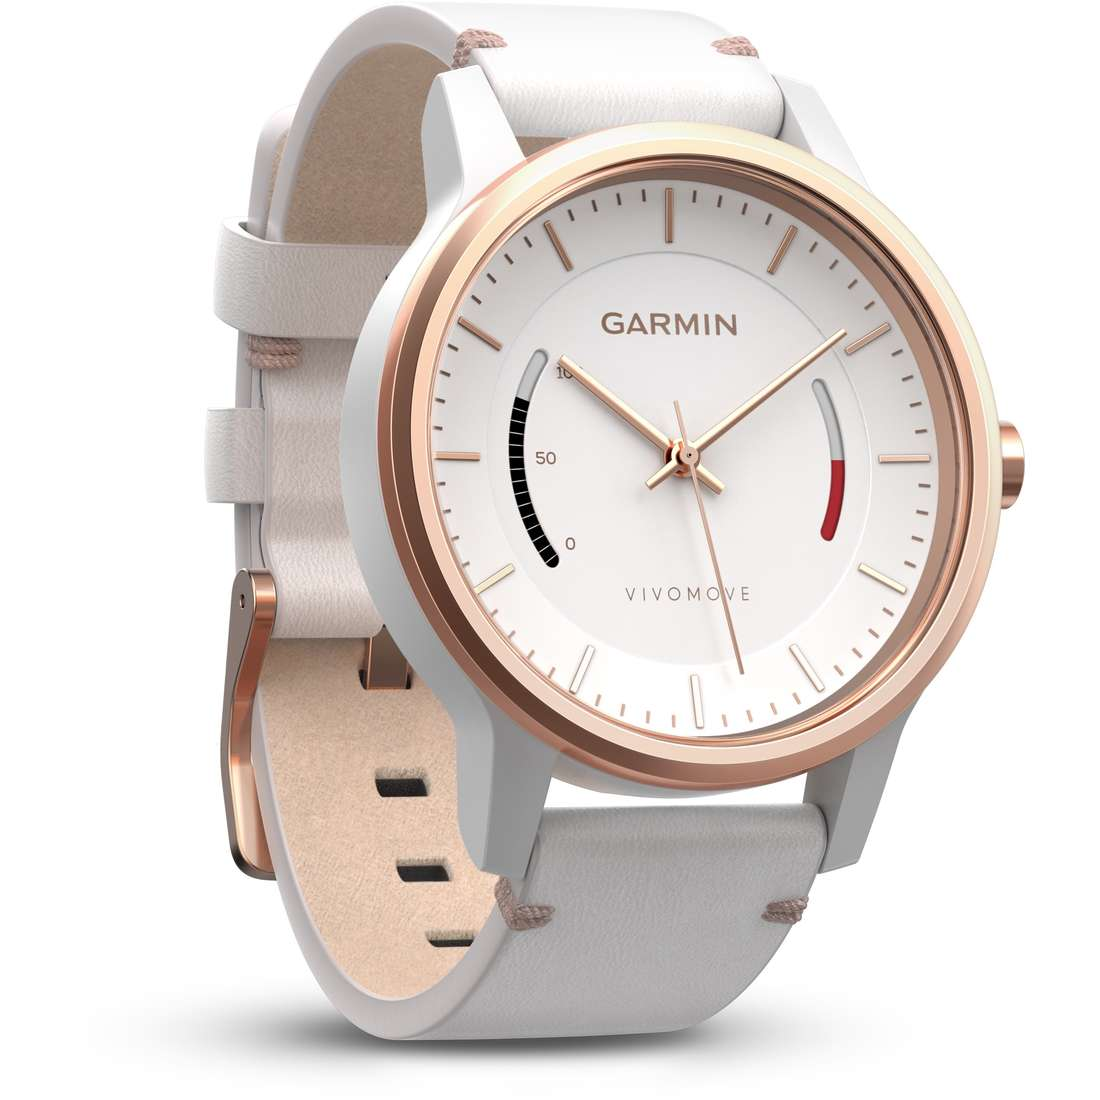 watch digital unisex Garmin Vivomove 010-01597-11